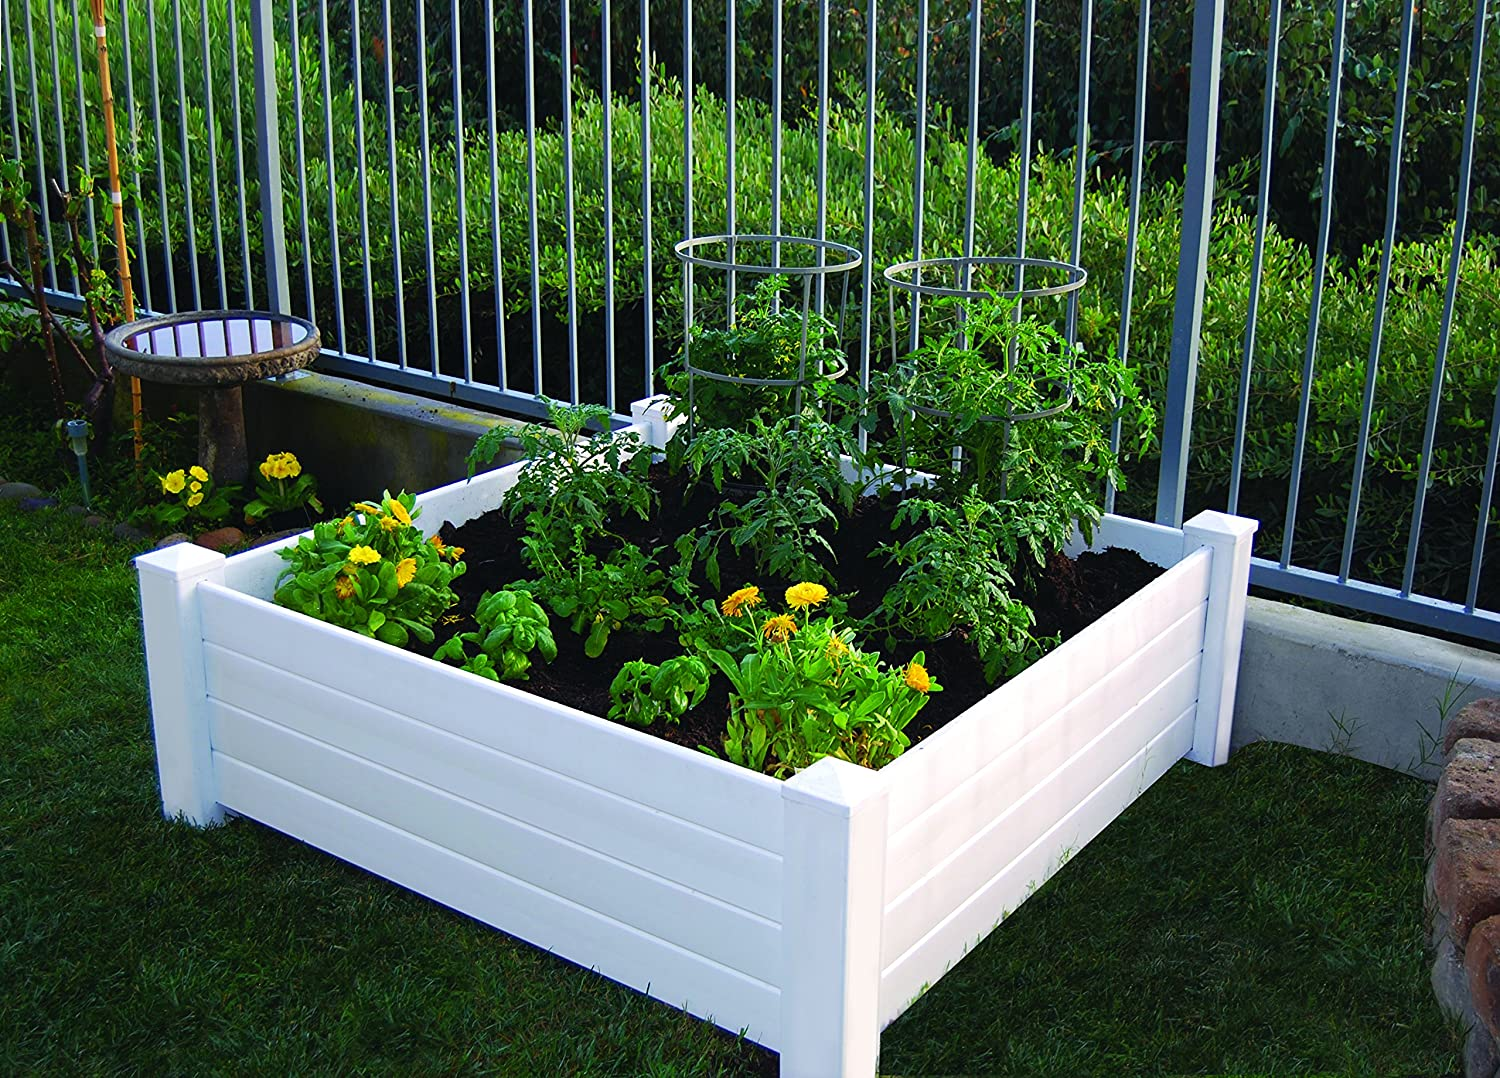 Superbe Amazon.com : NuVue Products Raised 48 By 48 By 15 Inch Garden Box Kit,  Extra Tall, White : Metal Pots : Garden U0026 Outdoor